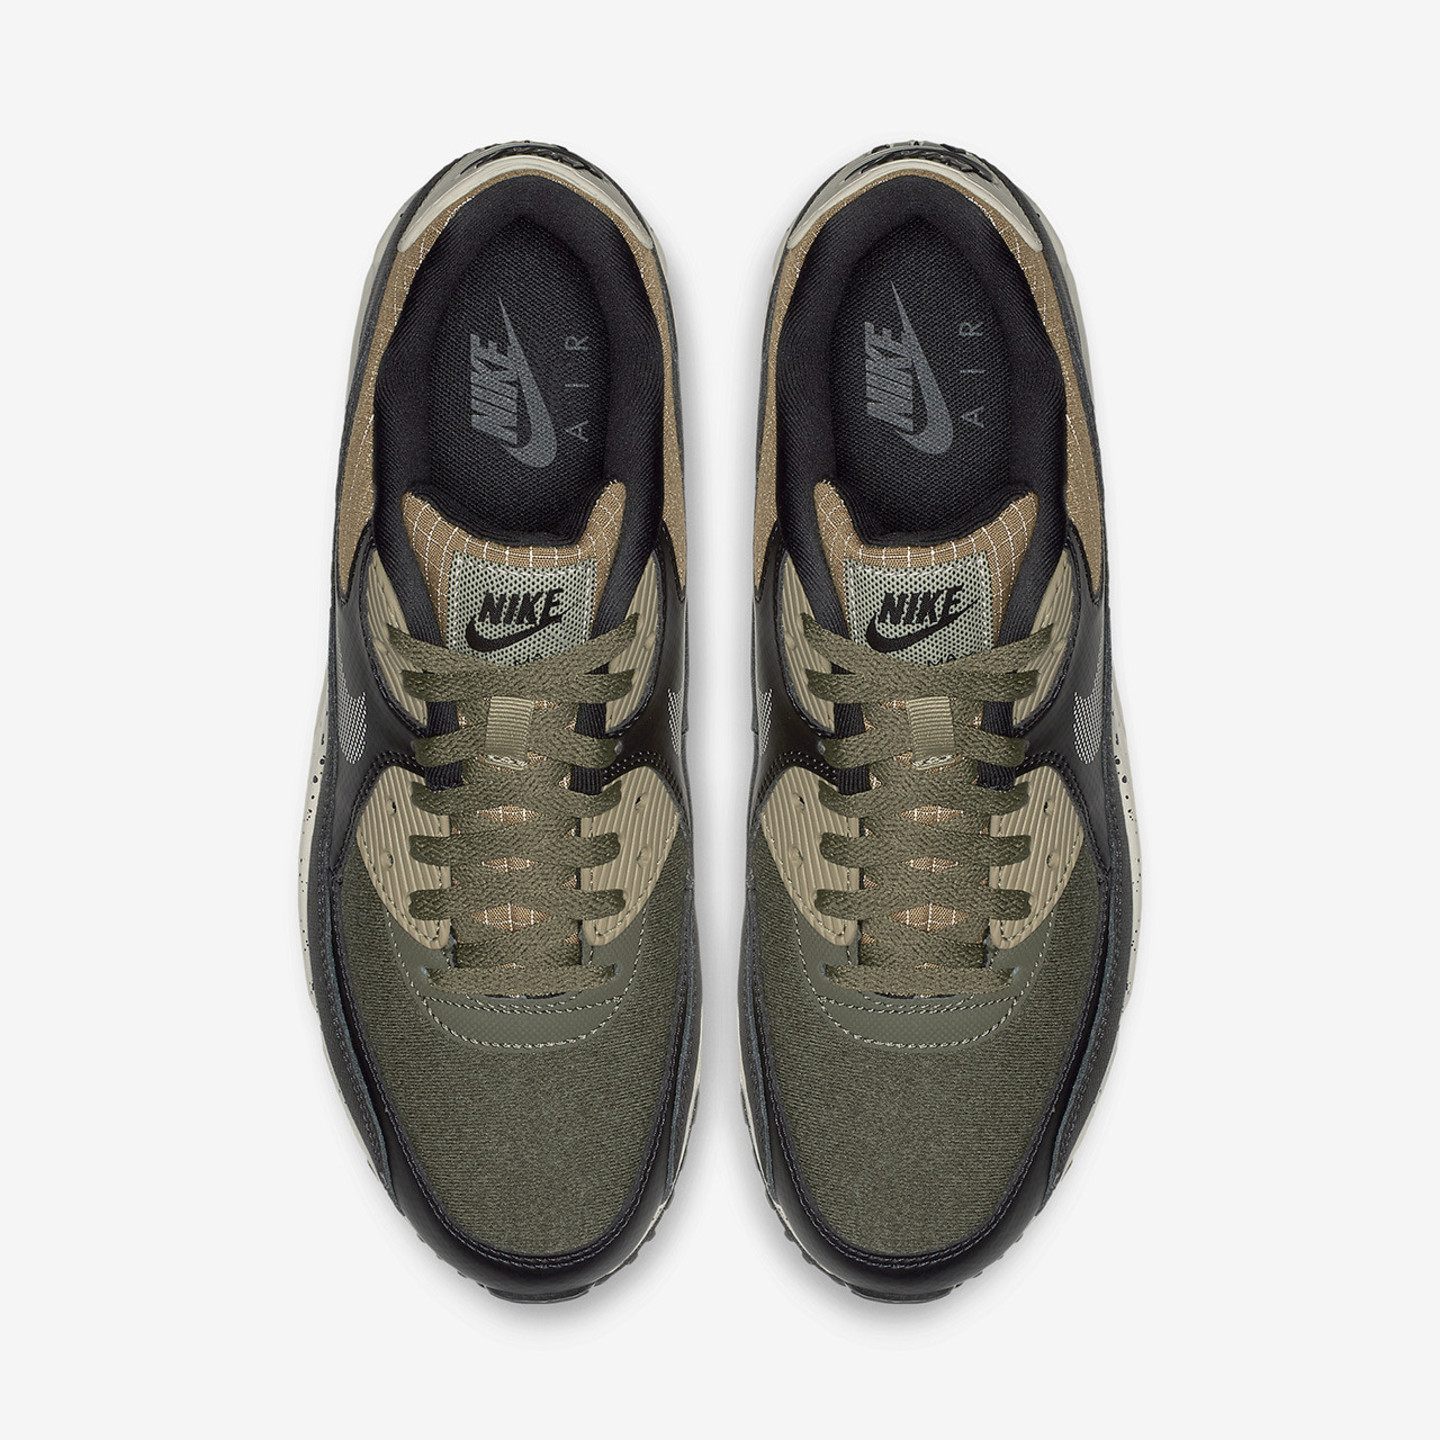 Nike Air Max 90 Premium 'Reflective Ripstop' Neutral Olive / Black / Anthracite 700155-203